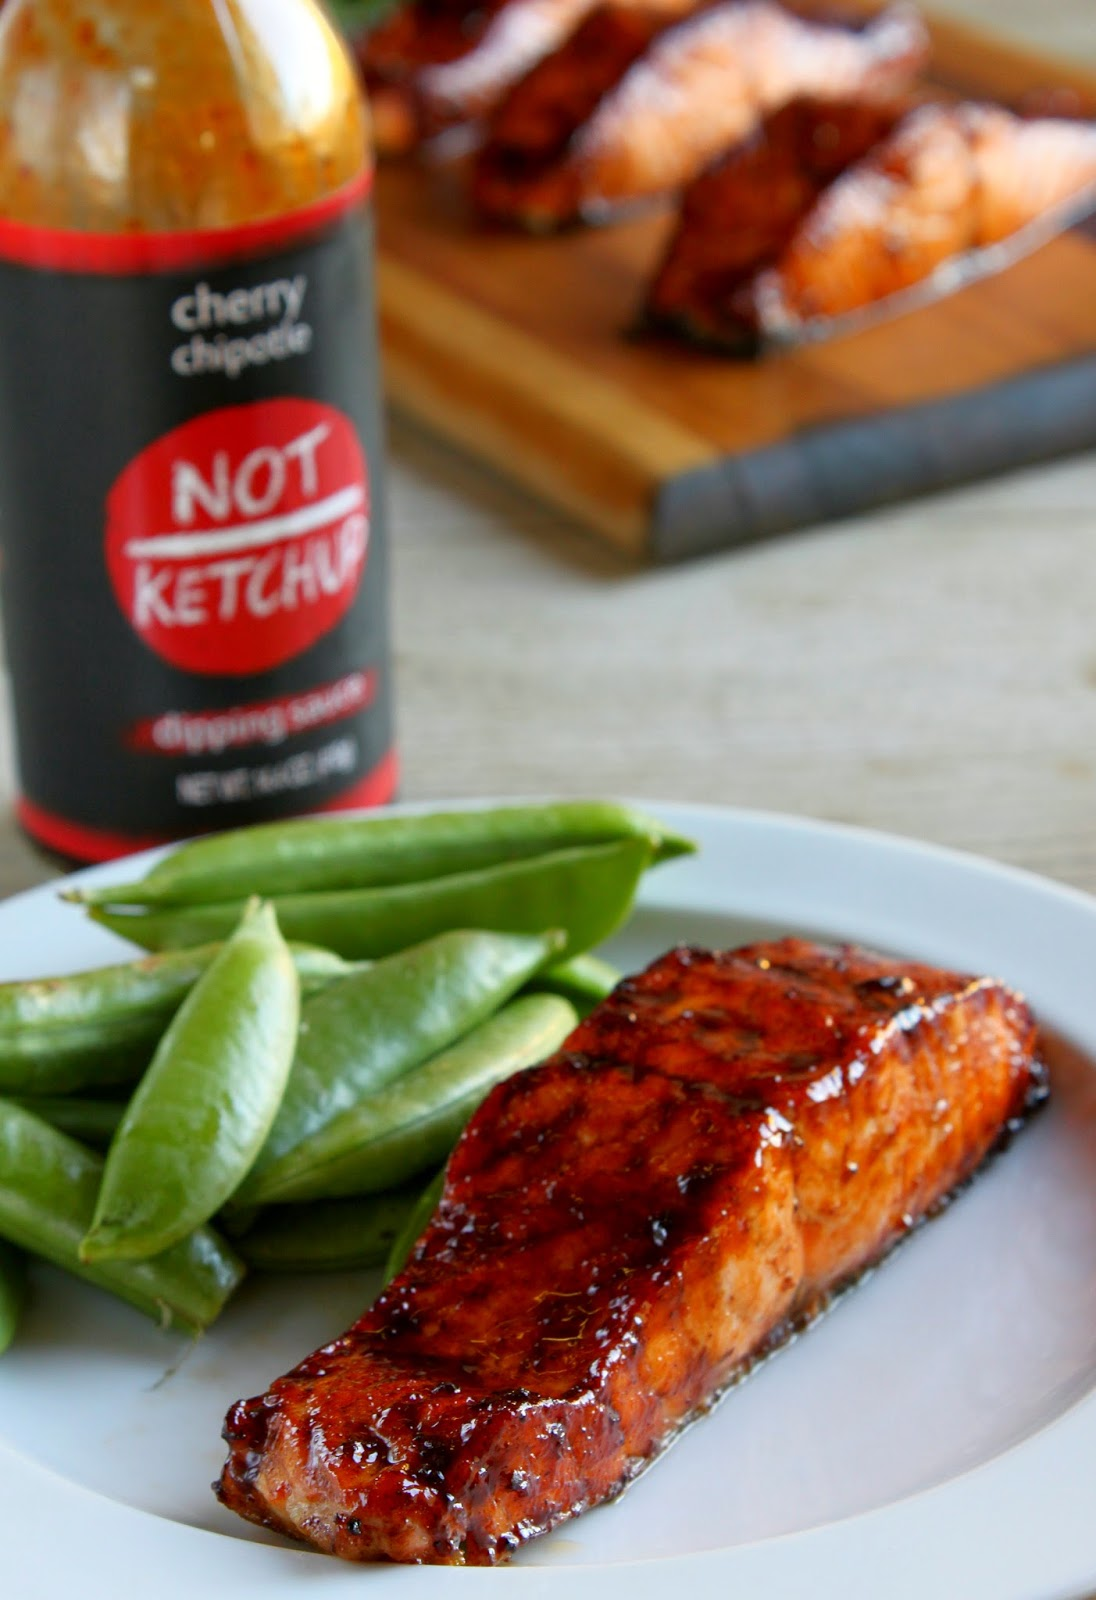 Glazed salmon fillets with Cherry Chipotle Not Ketchup